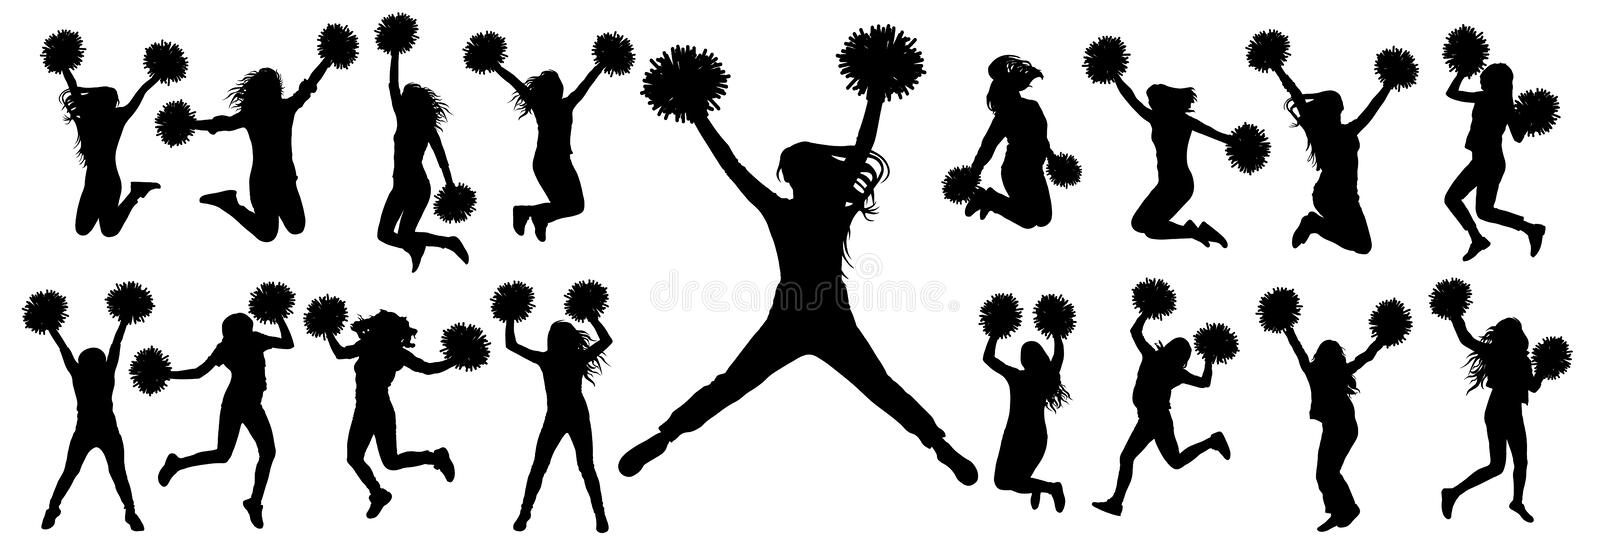 Silhouettes of cheerleading dancers jumping and standing with pompoms, isolated set of icons.Vector illustration.  stock illustration